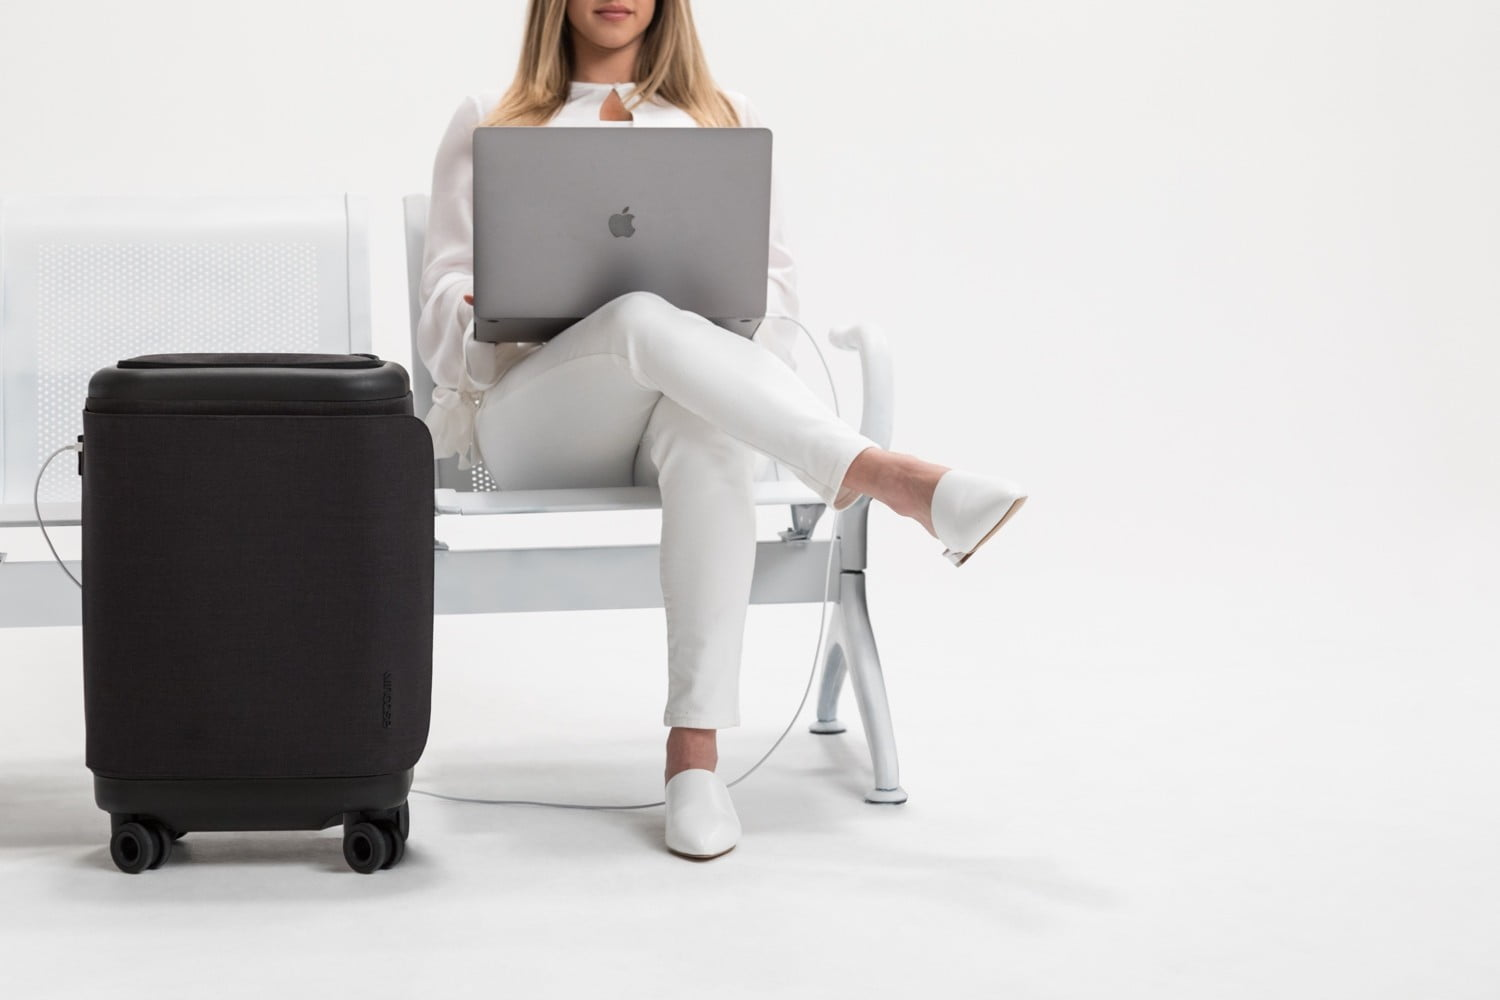 4c821b3ca766 incase proconnected 4 wheel hubless roller smart luggage blends high design  with large capacity battery lifestyle